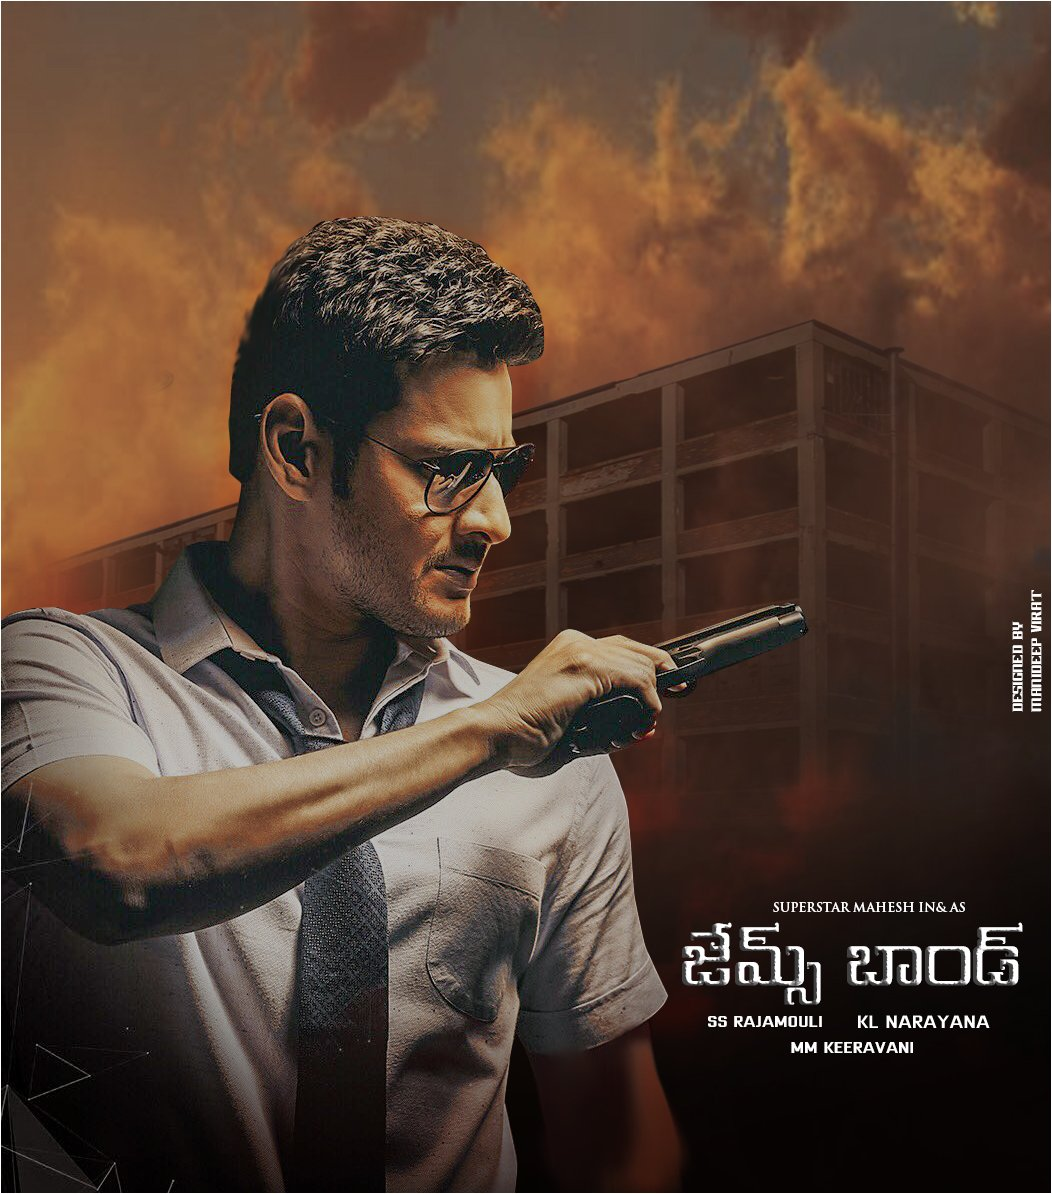 #INDIAN JAMES BOND  DESIGNED BY :- @imManideepvirat  @urstrulyMahesh  @MaheshFanTrends  #HBDMaheshBabupic.twitter.com/kffnDexbTZ